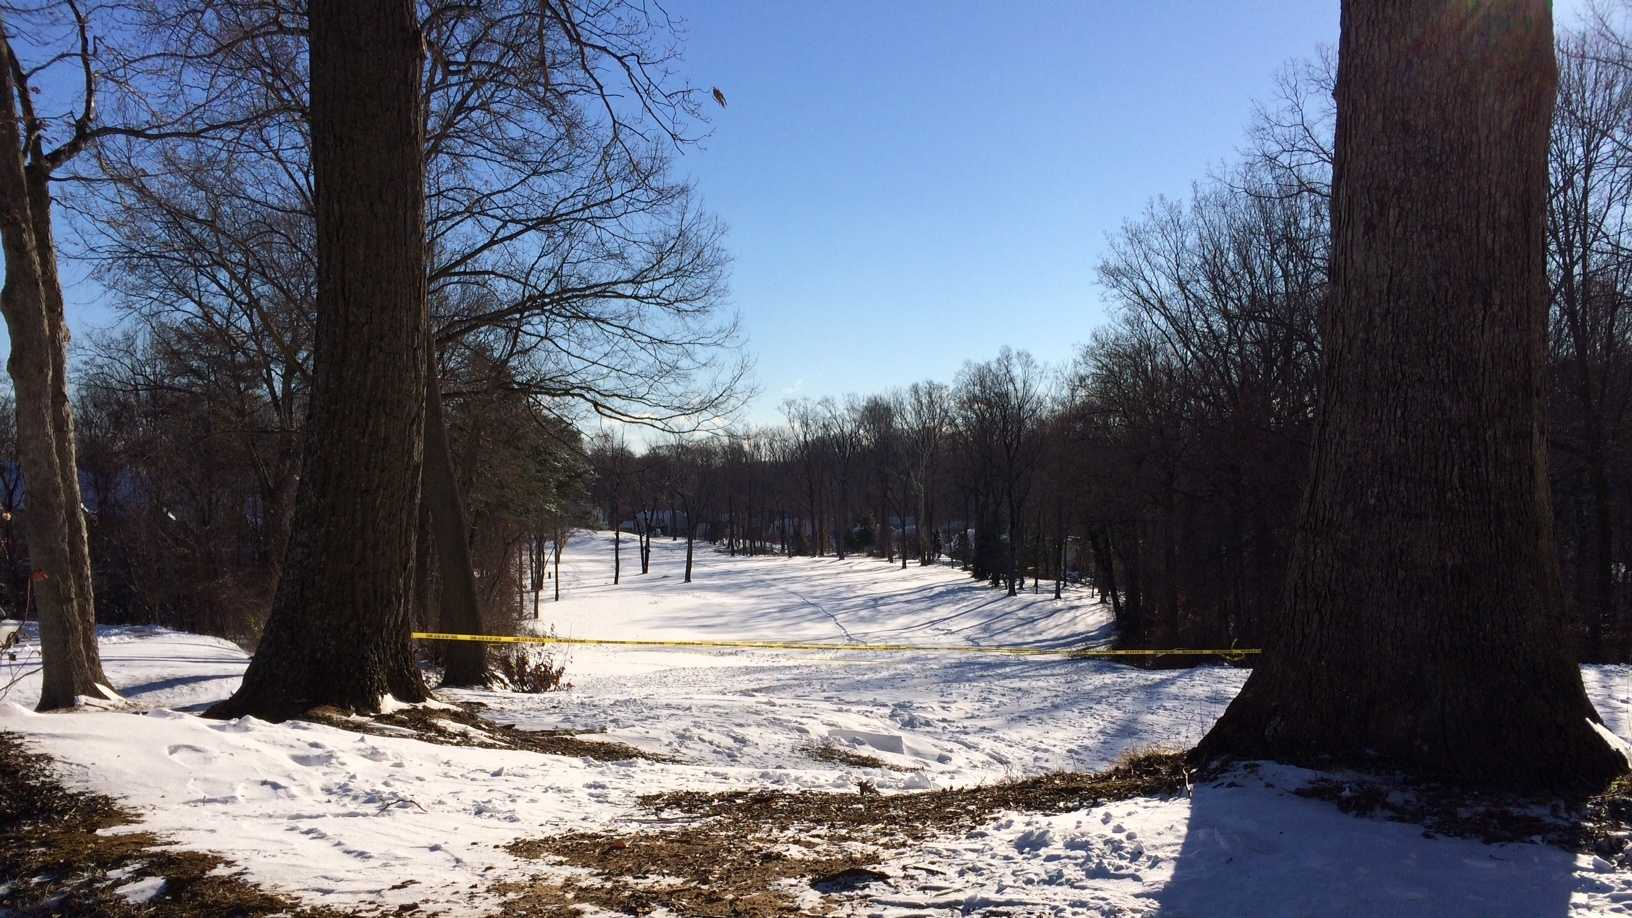 A woman's body is found on the grounds of the Bay Hills Golf Club in Arnold.